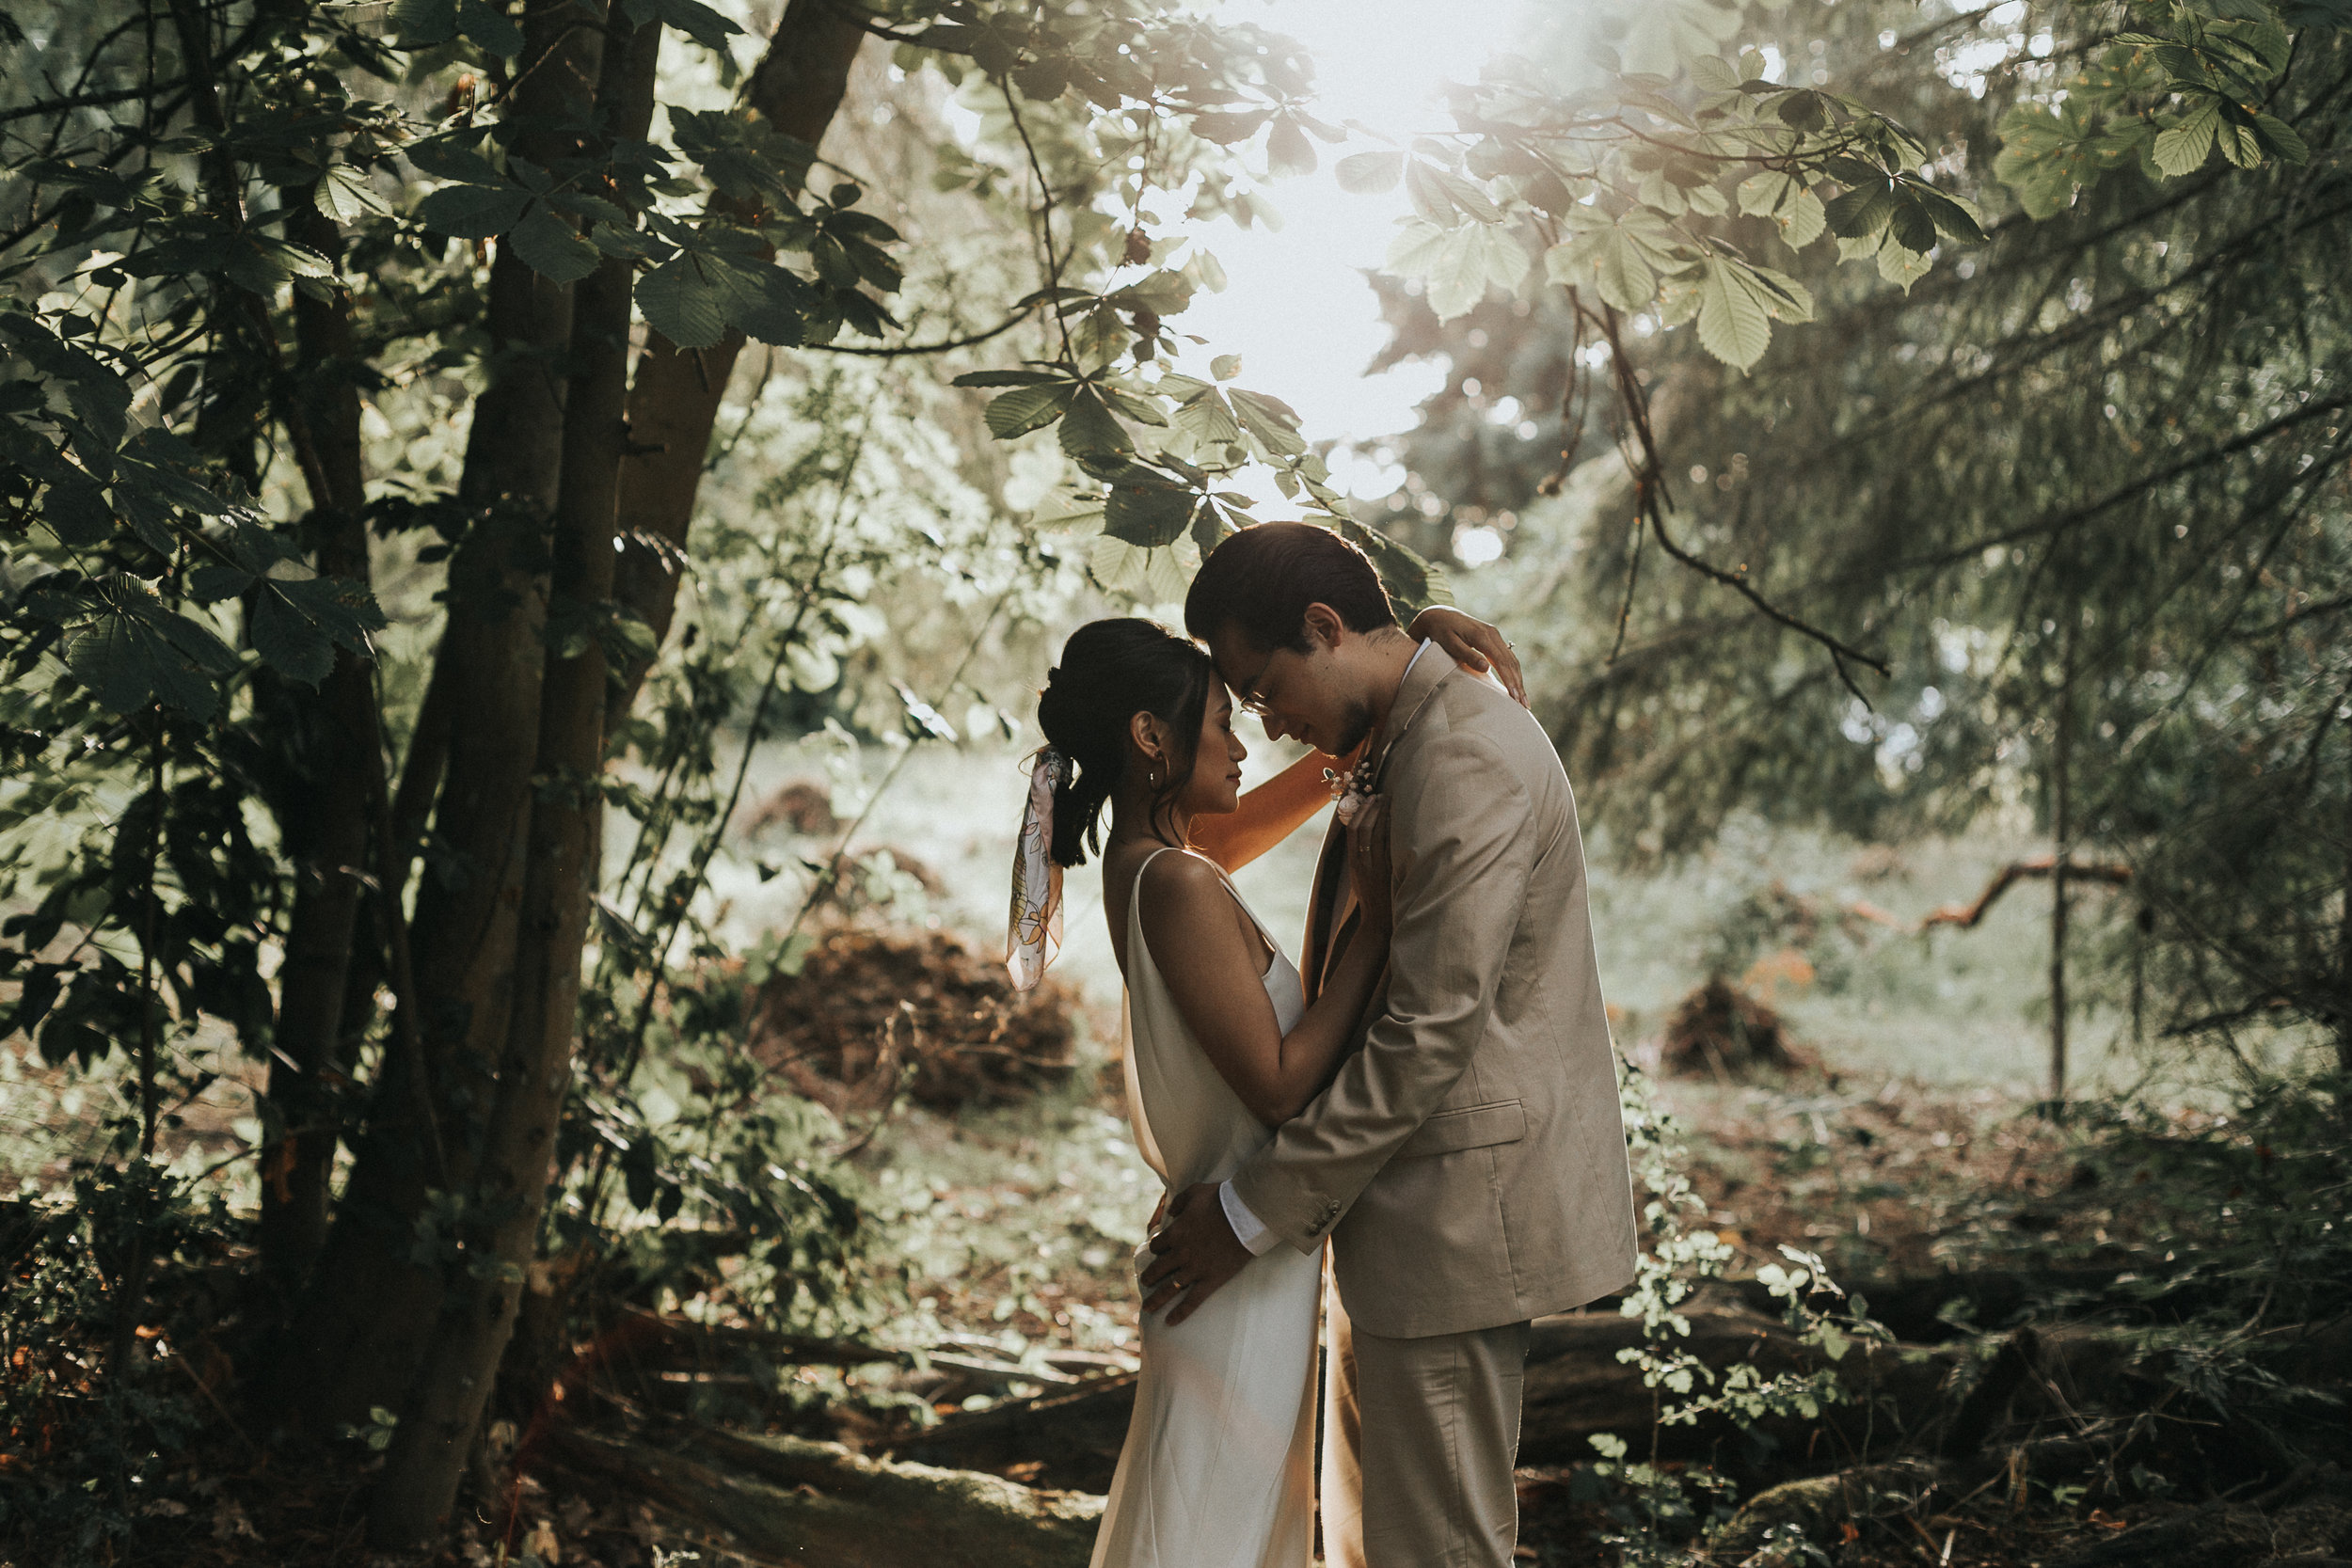 discoveryparkelopement - runaway with me elopements - seattle elopement-148.jpg